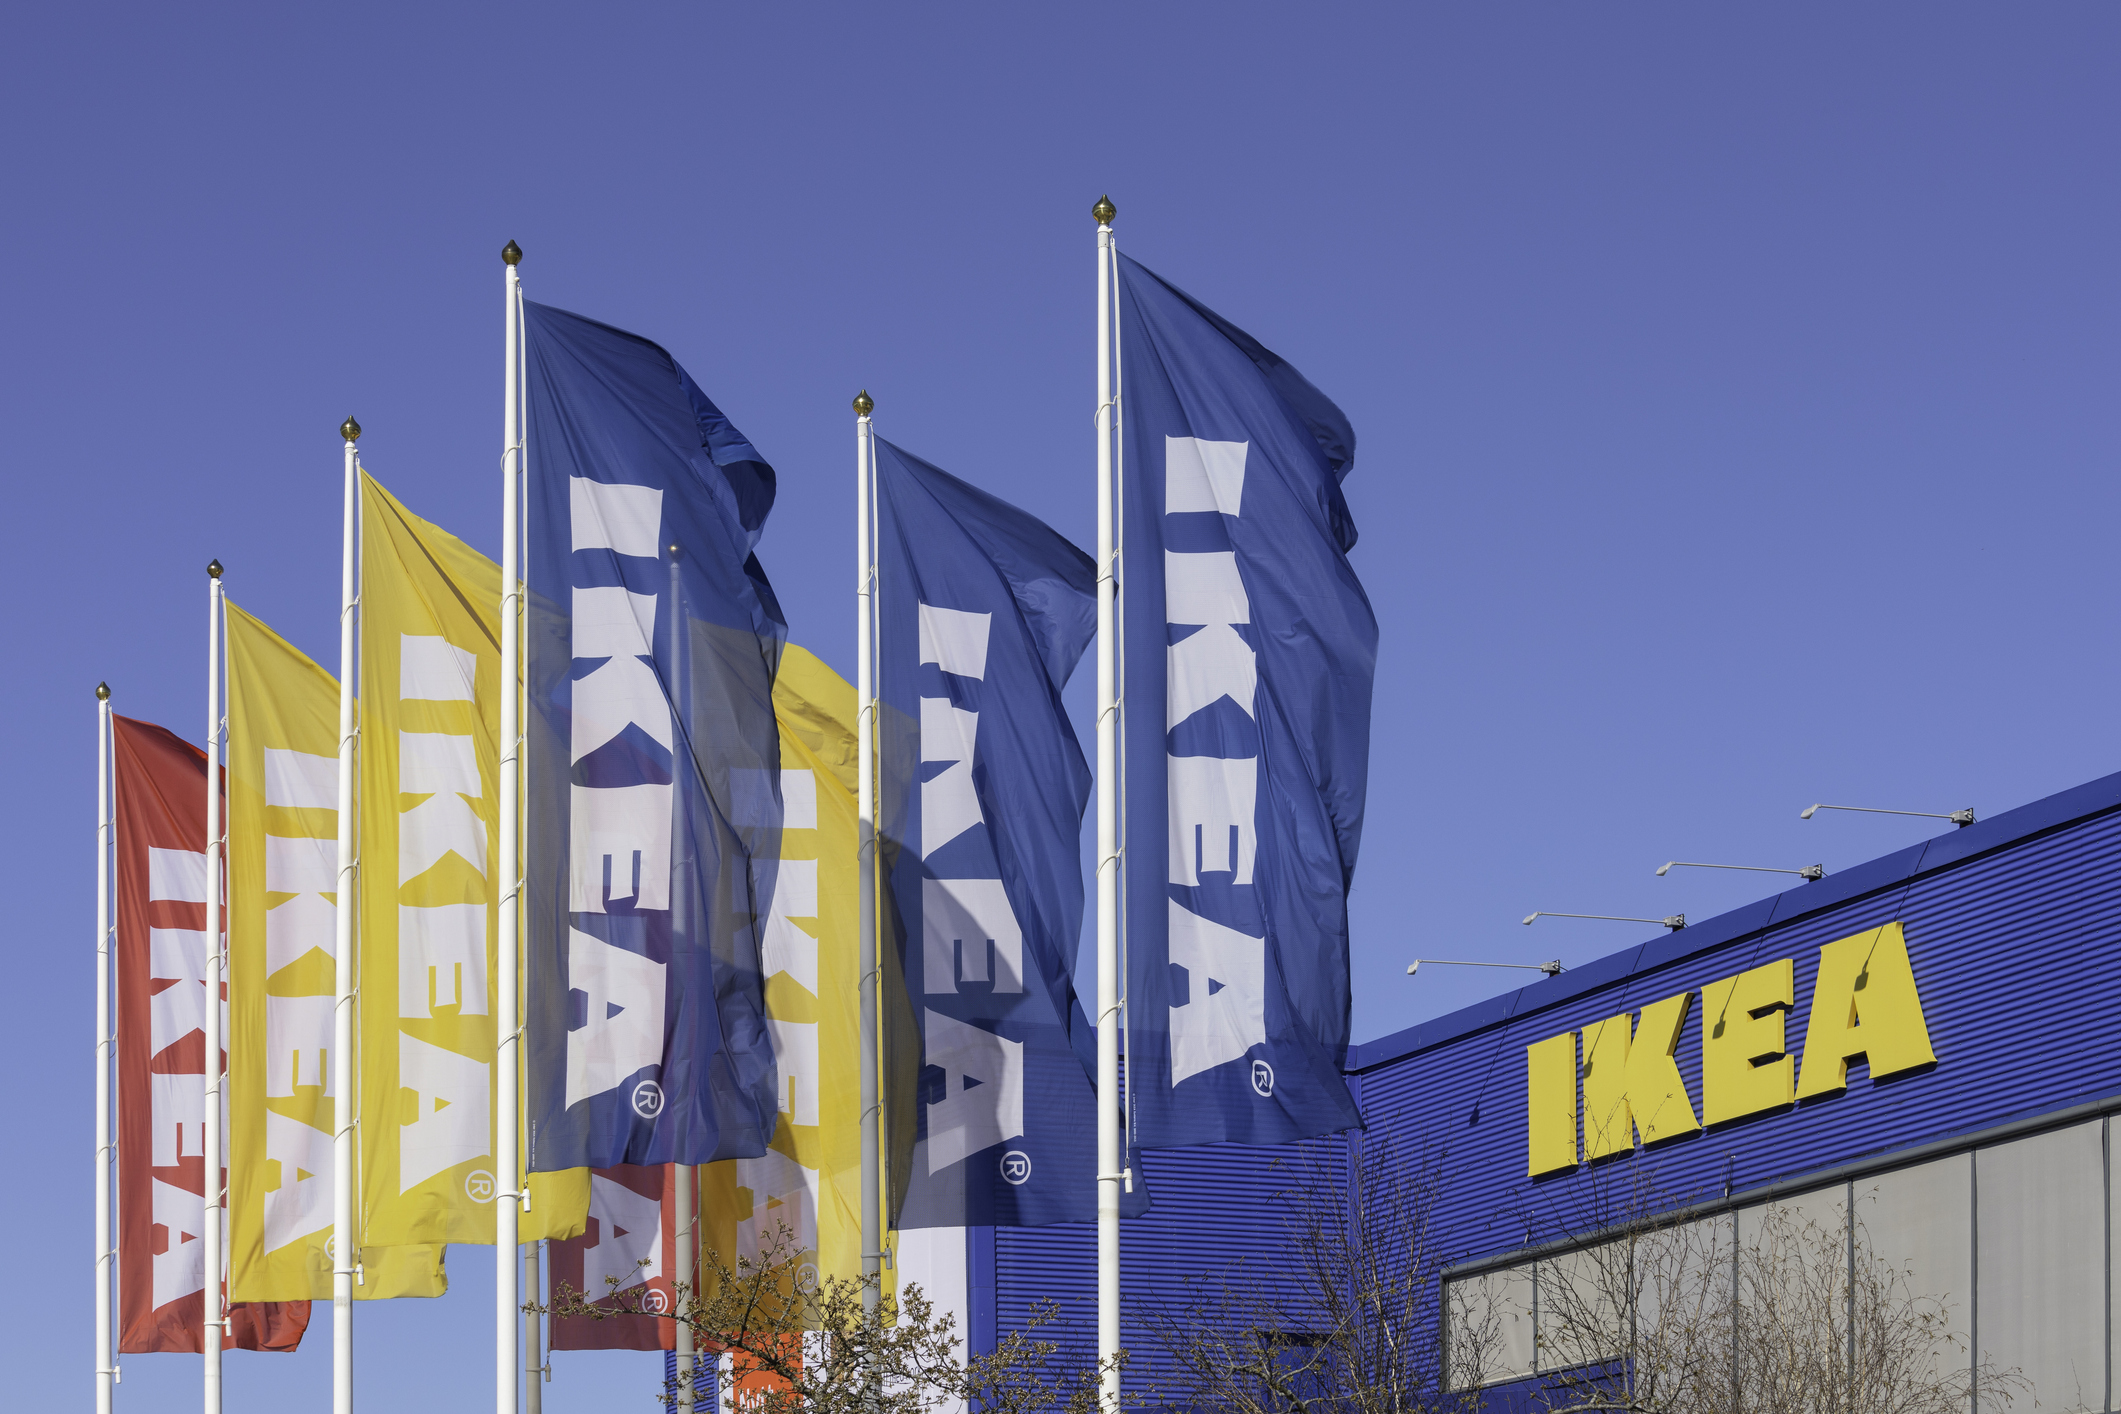 IKEA launches 'Disassembly Instructions' to help shoppers take flatpack items apart with ease